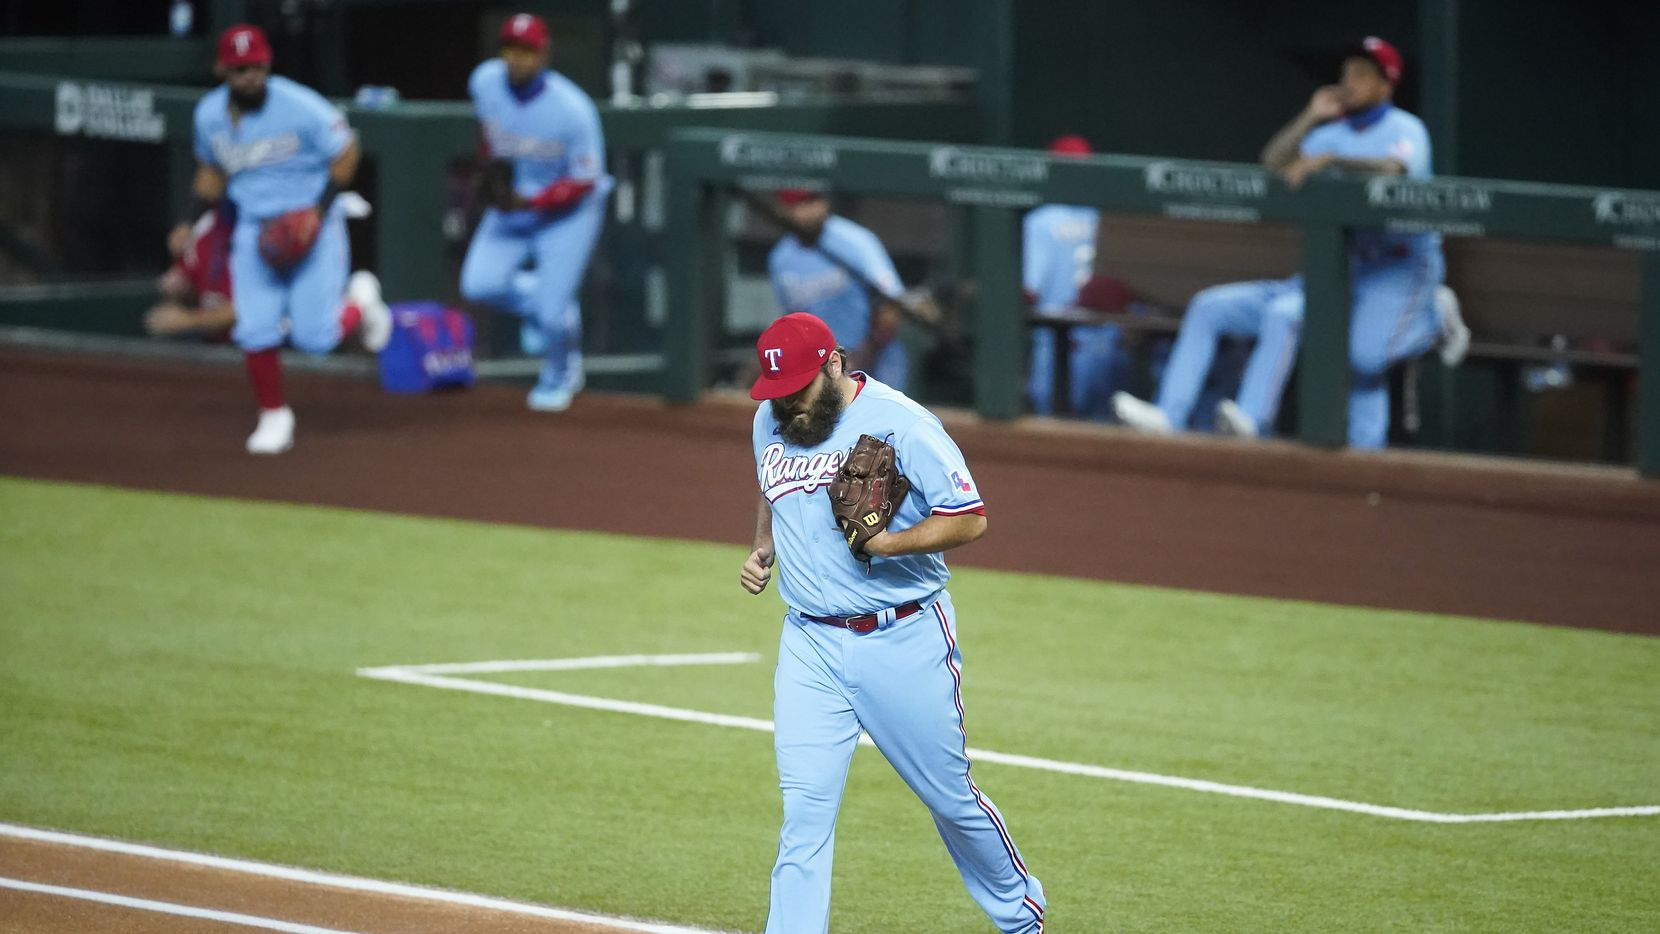 Texas Rangers pitcher Lance Lynn takes the field to face the Los Angeles Angels at Globe Life Field on Sunday, Aug. 9, 2020.